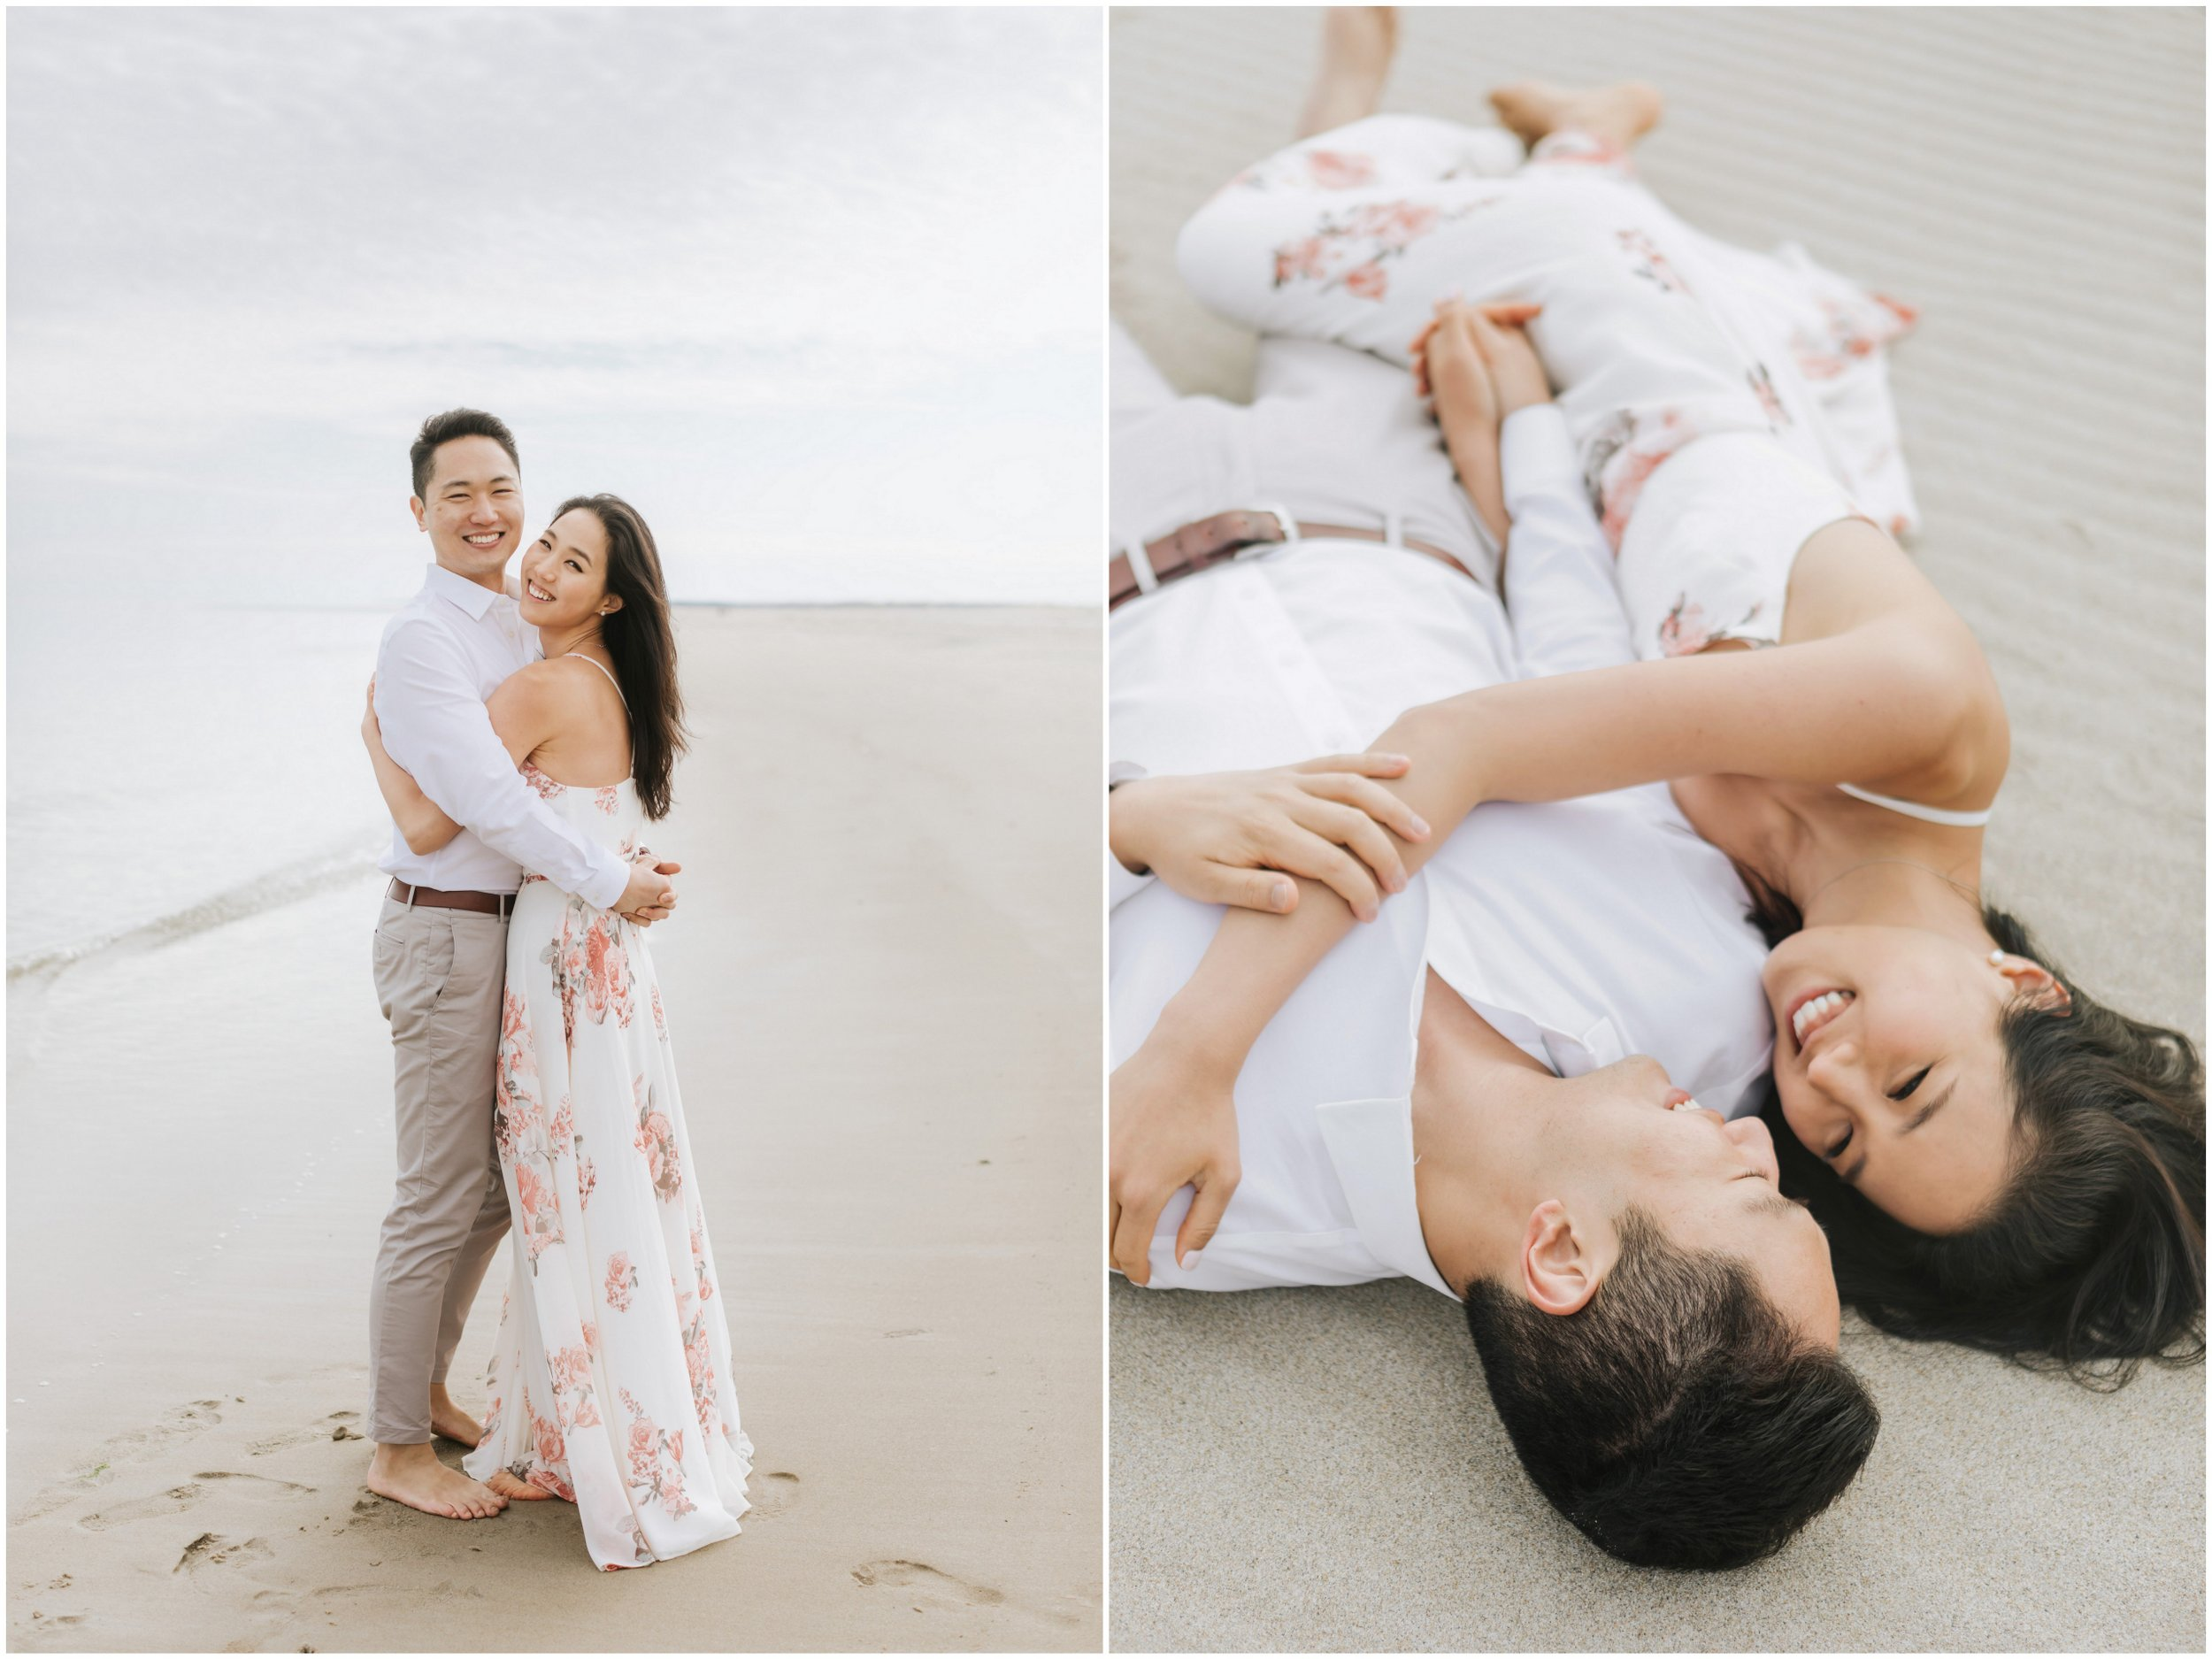 Crane-Beach-Engagement-Wedding-Lena-Mirisola-6.JPG